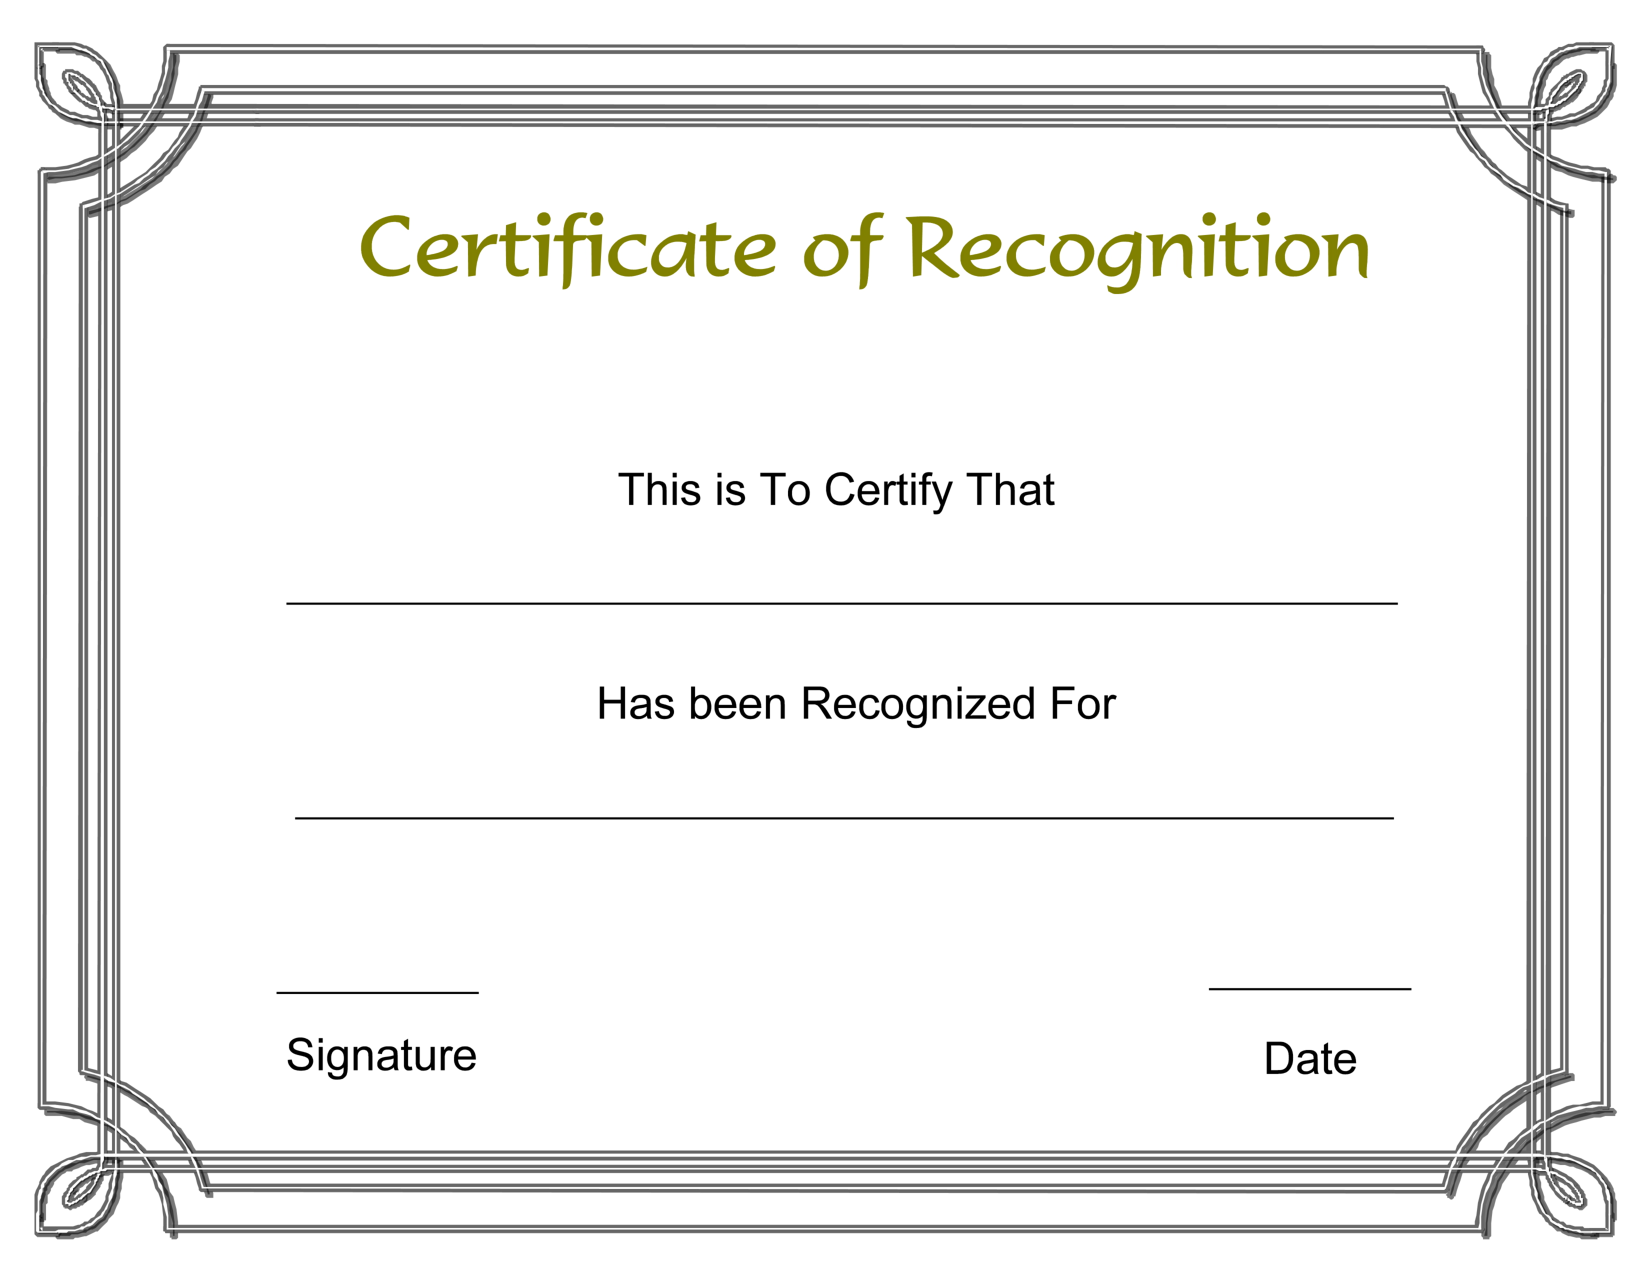 Template free award certificate templates and employee recognition template free award certificate templates and employee recognition printable appreciation 1betcityfo Images